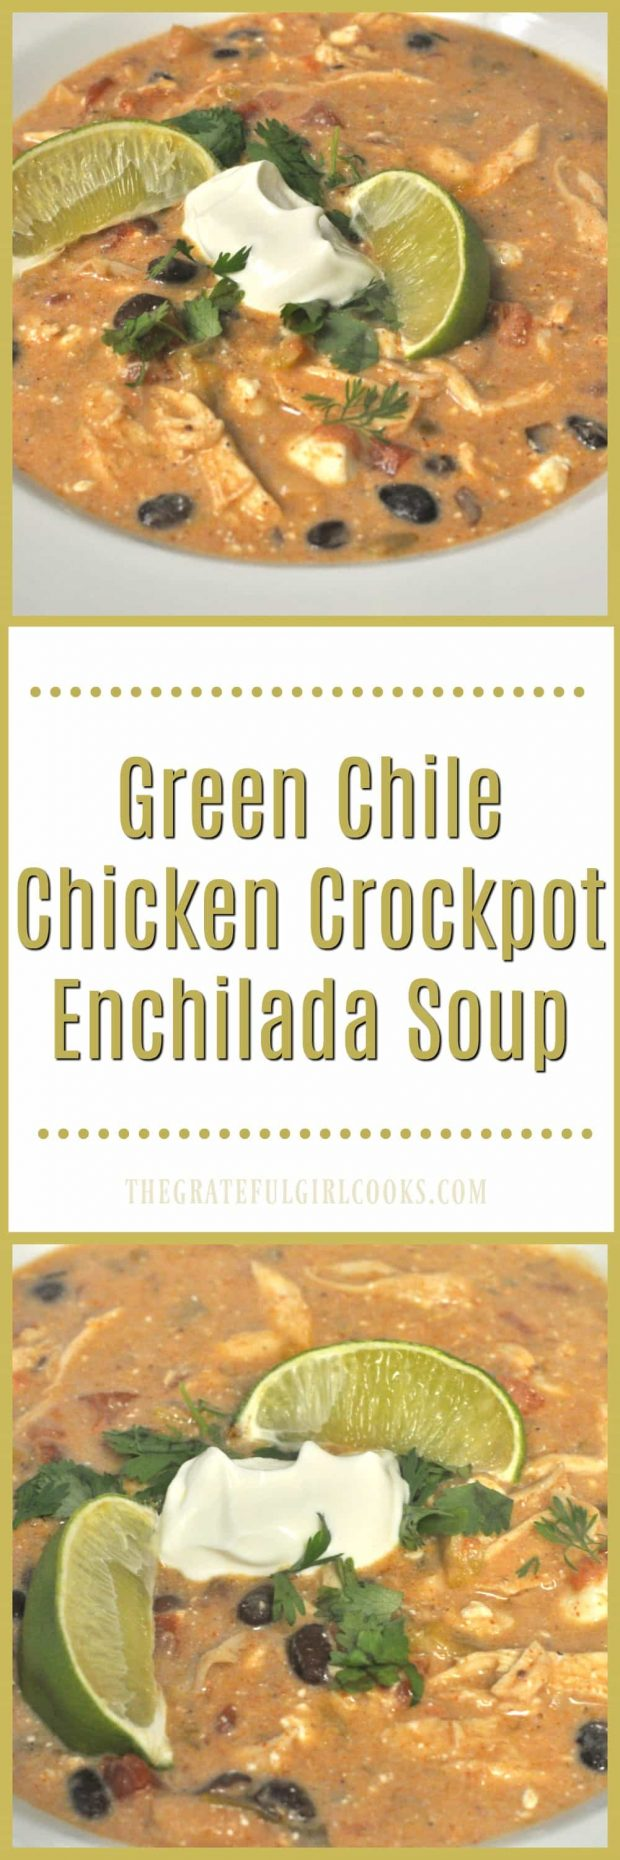 Green Chile Chicken Crockpot Enchilada Soup / The Grateful Girl Cooks! Creamy Green Chile Chicken Crockpot Enchilada Soup is an amazingly delicious Southwest inspired meal, conveniently made in a slow cooker!